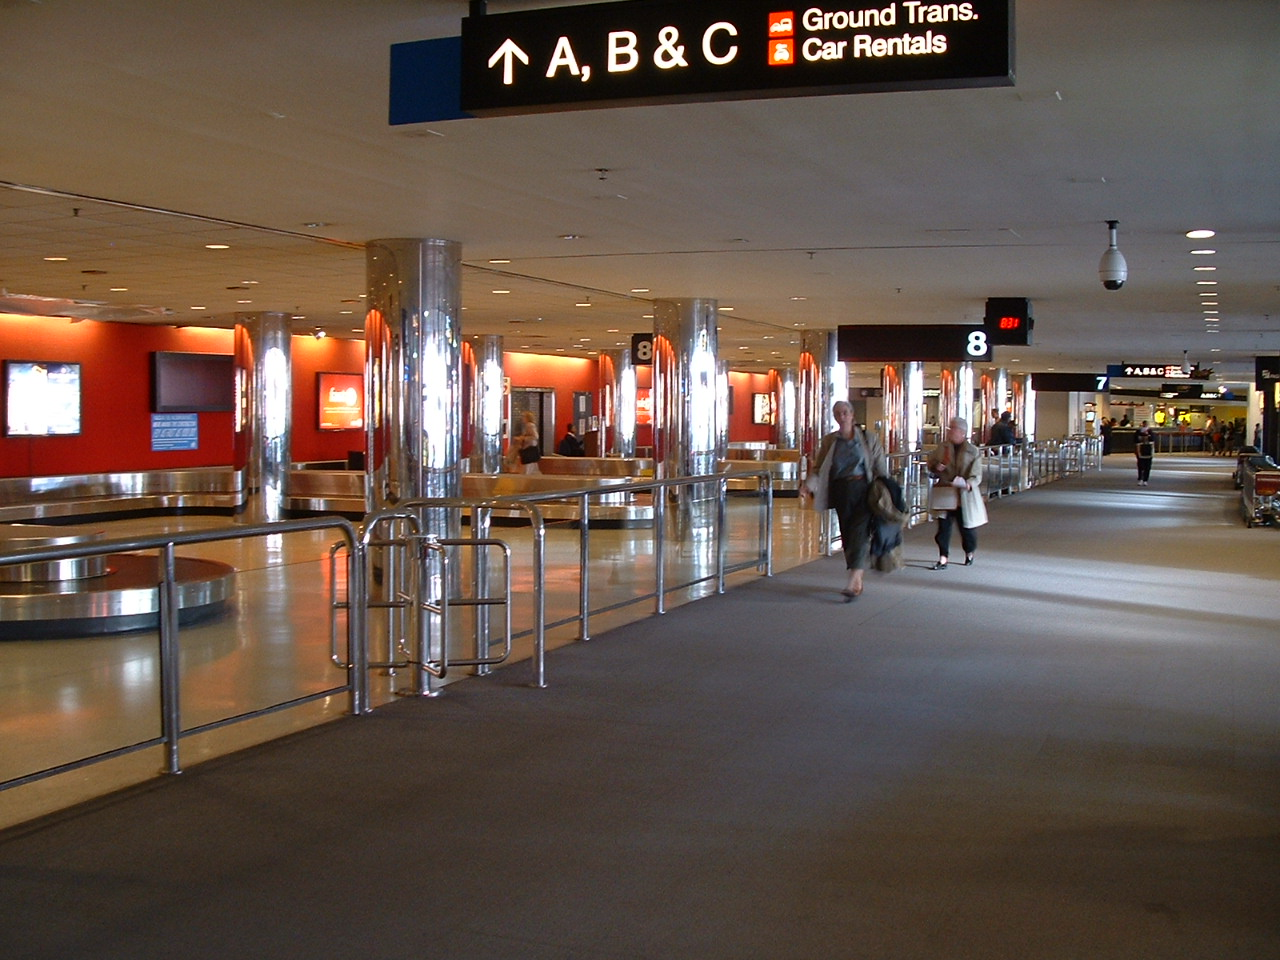 File Baggage Claim 2 Jpg Wikimedia Commons